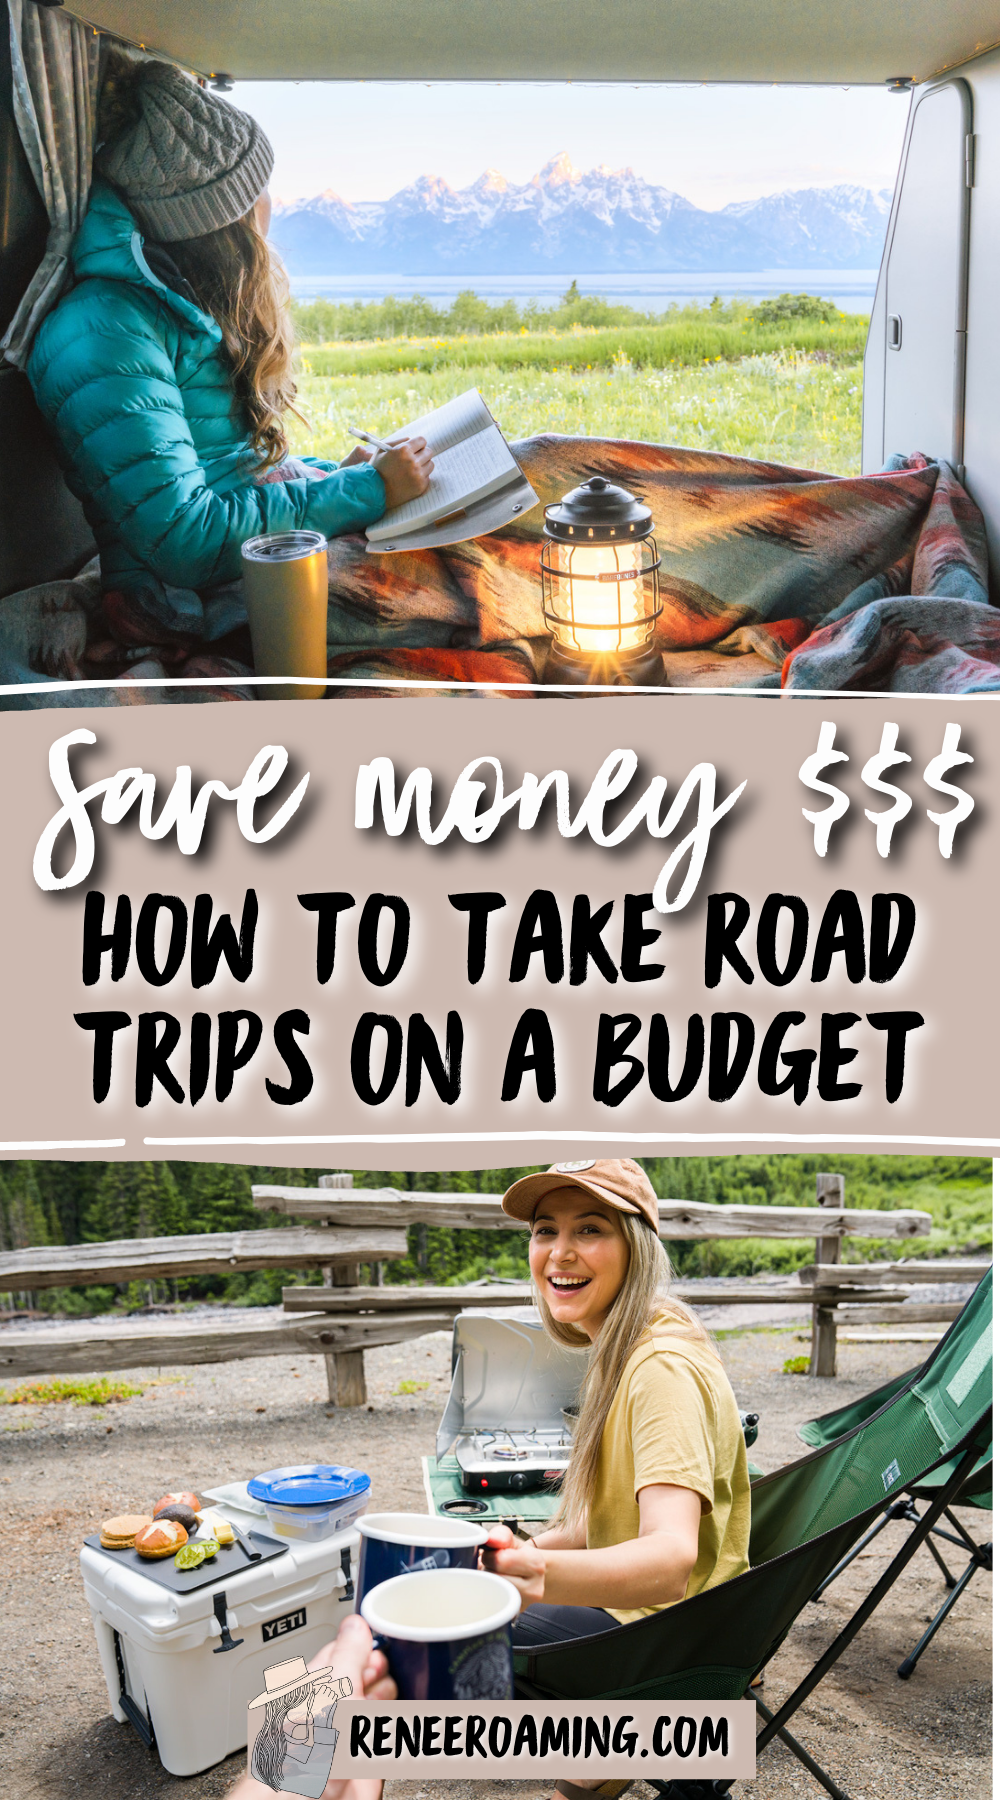 How To Take A Road Trip On A Budget